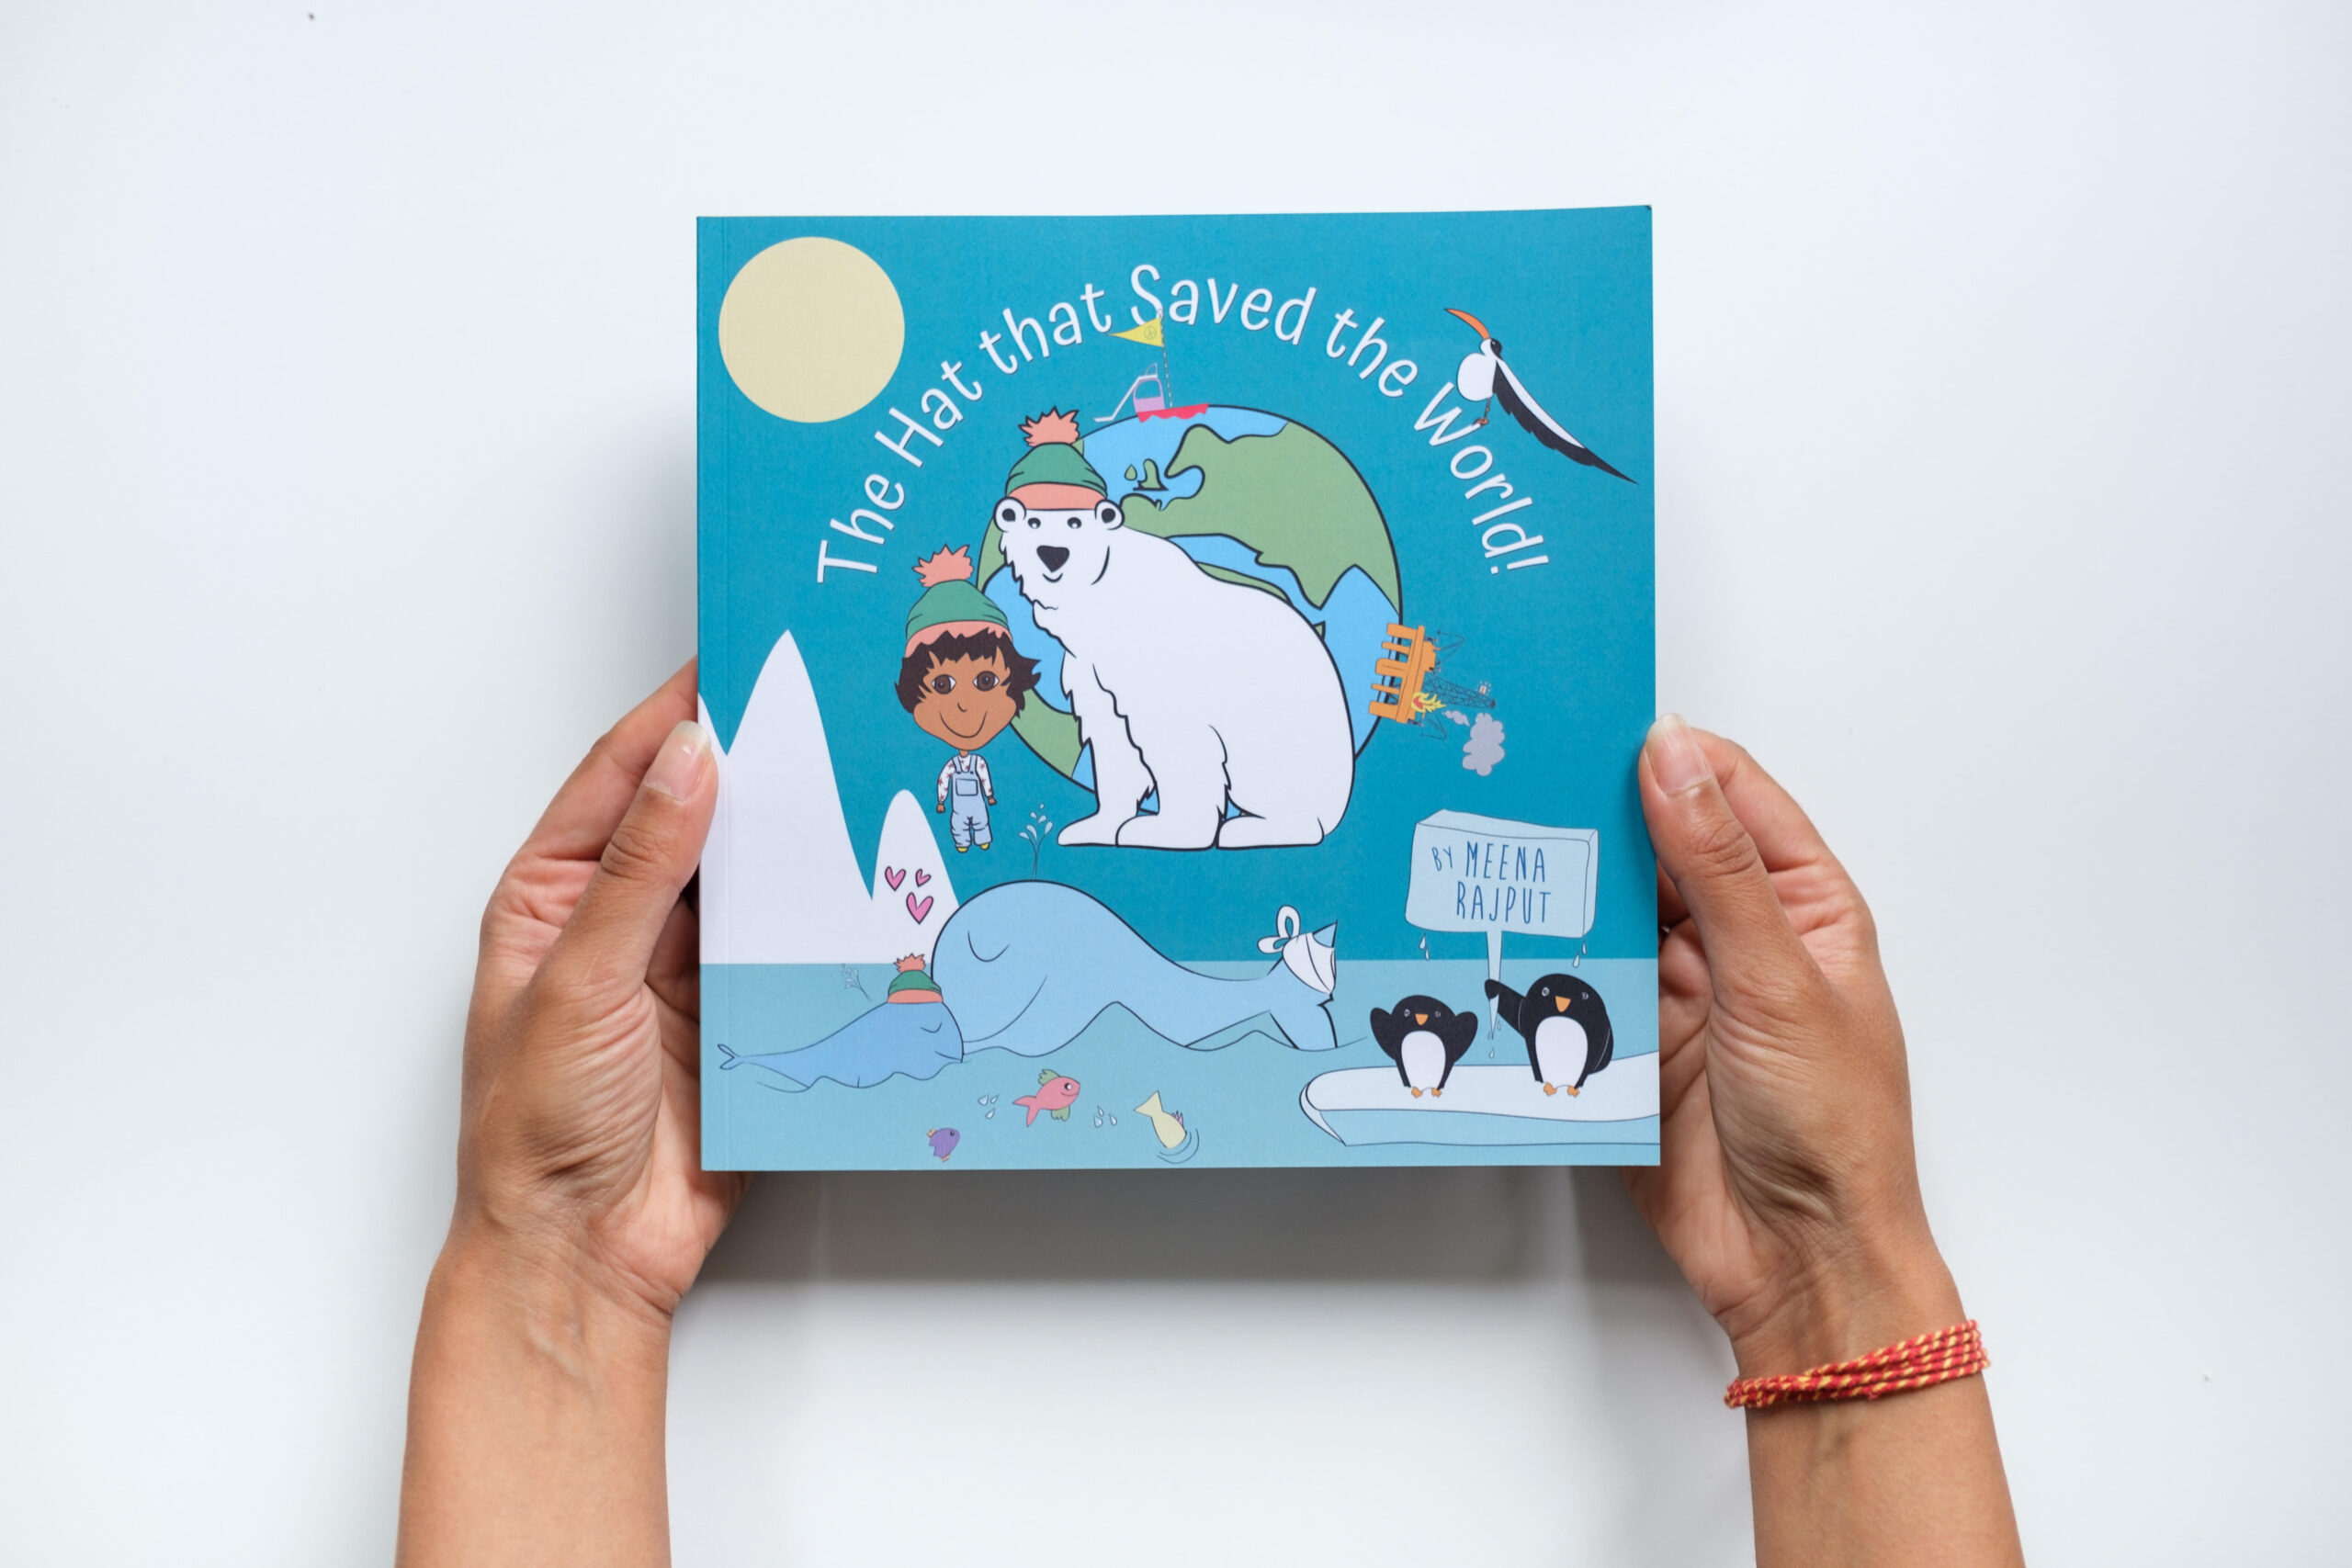 Hands holding a children's book 'The Hat that Saved the World', which features a young child with a polar bear wearing a hat